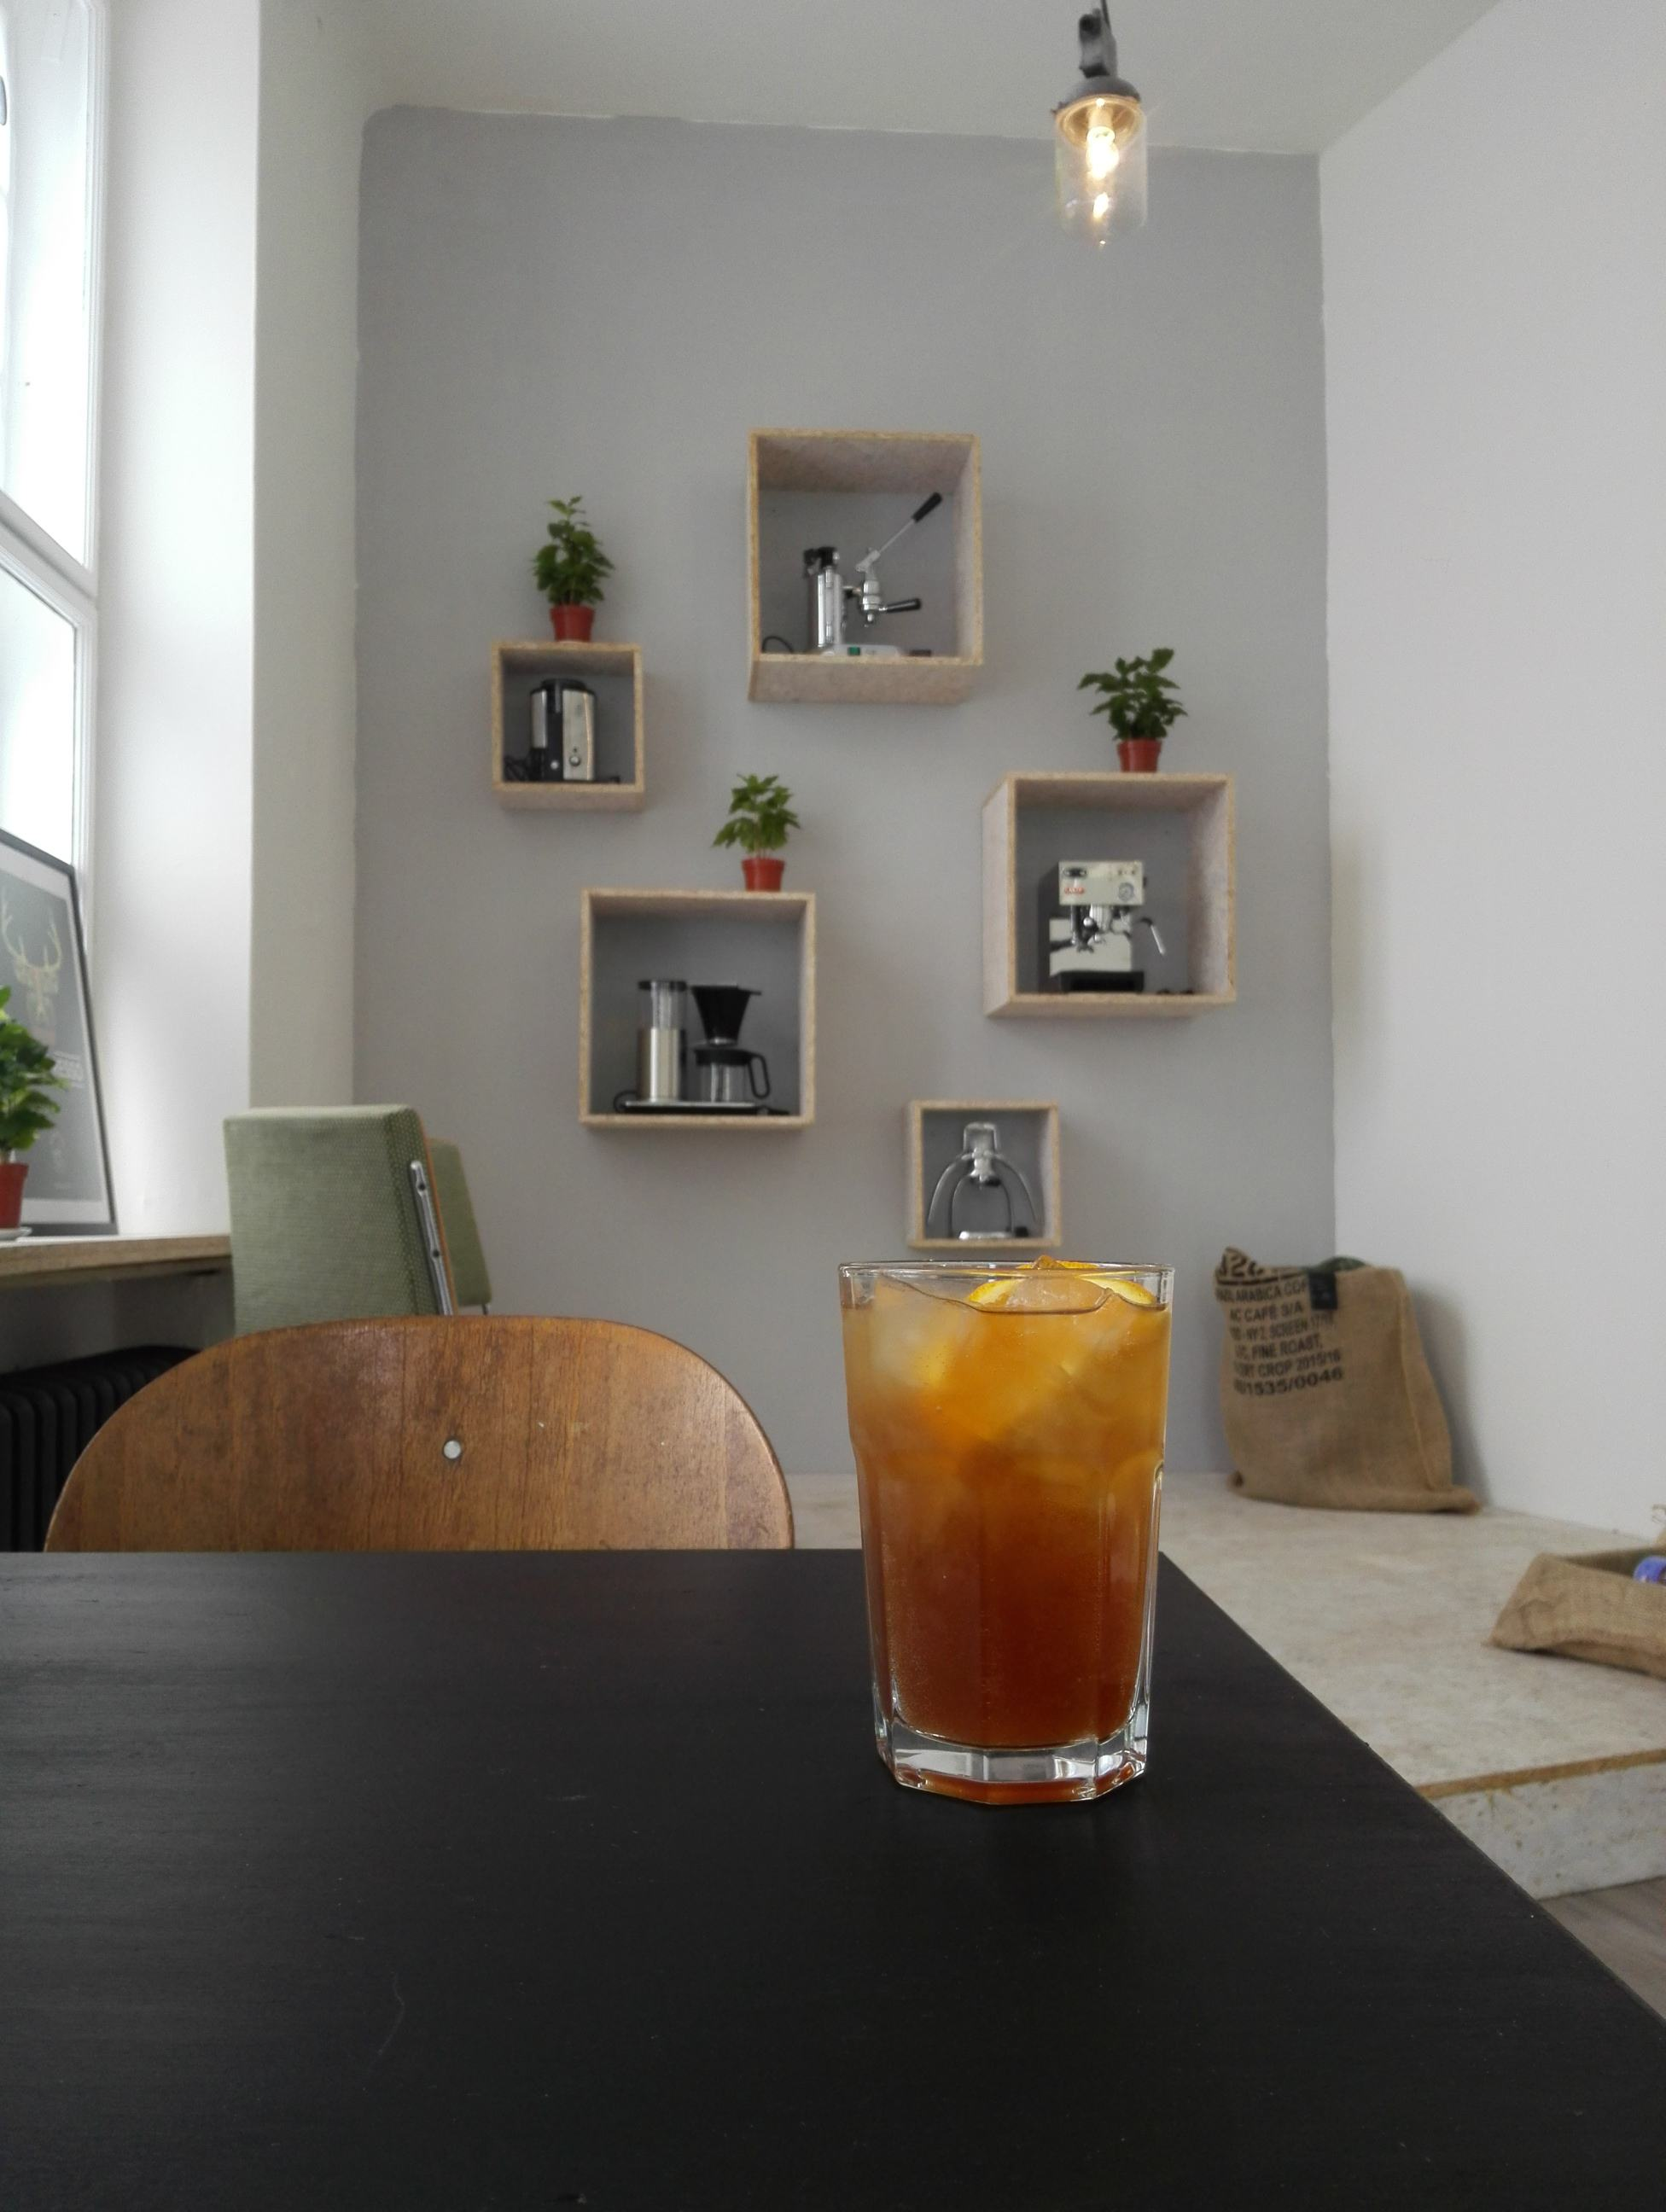 Cascara Tonic